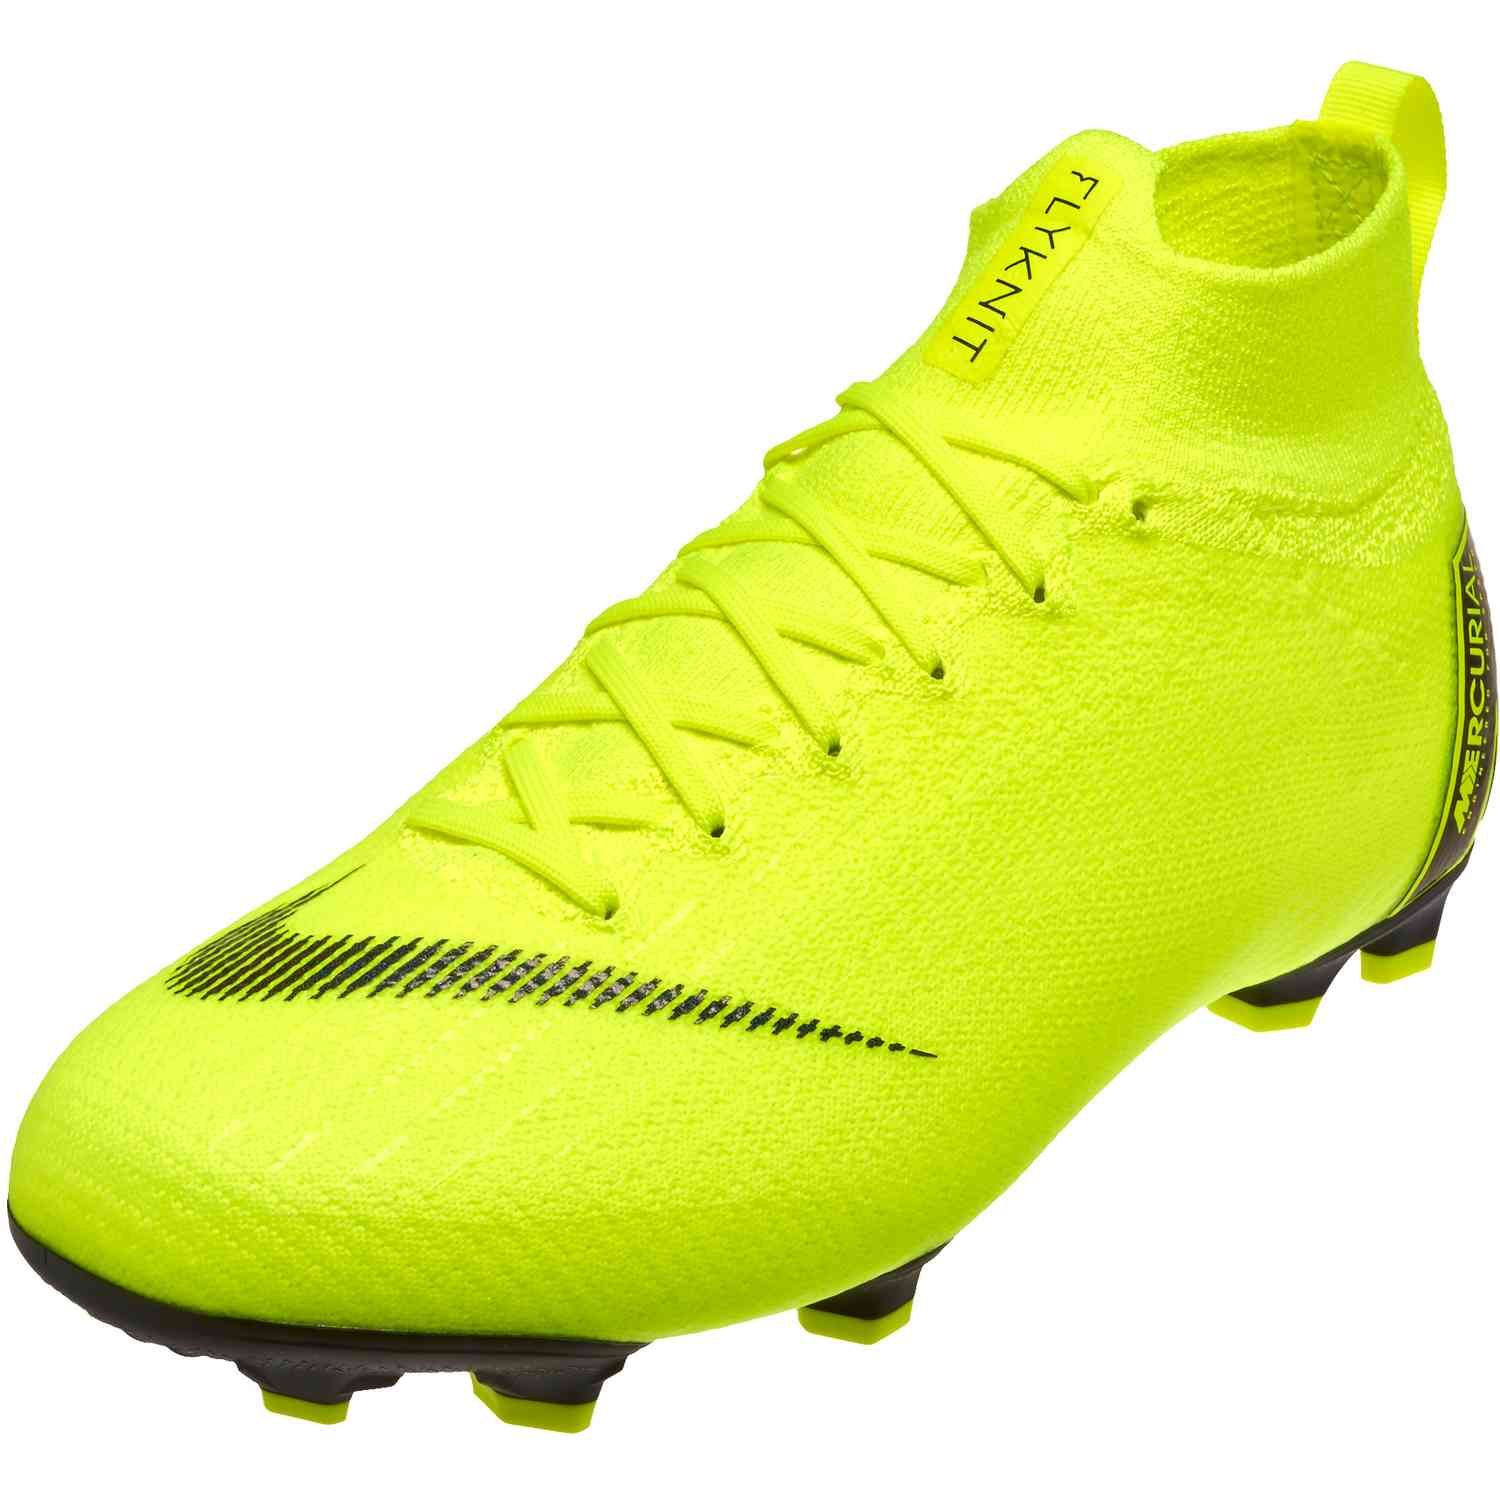 Kids Nike Superfly 6 Elite Fg Soccer Cleats Volt And Black Soccerpro Cool Football Boots Kids Soccer Cleats Soccer Cleats